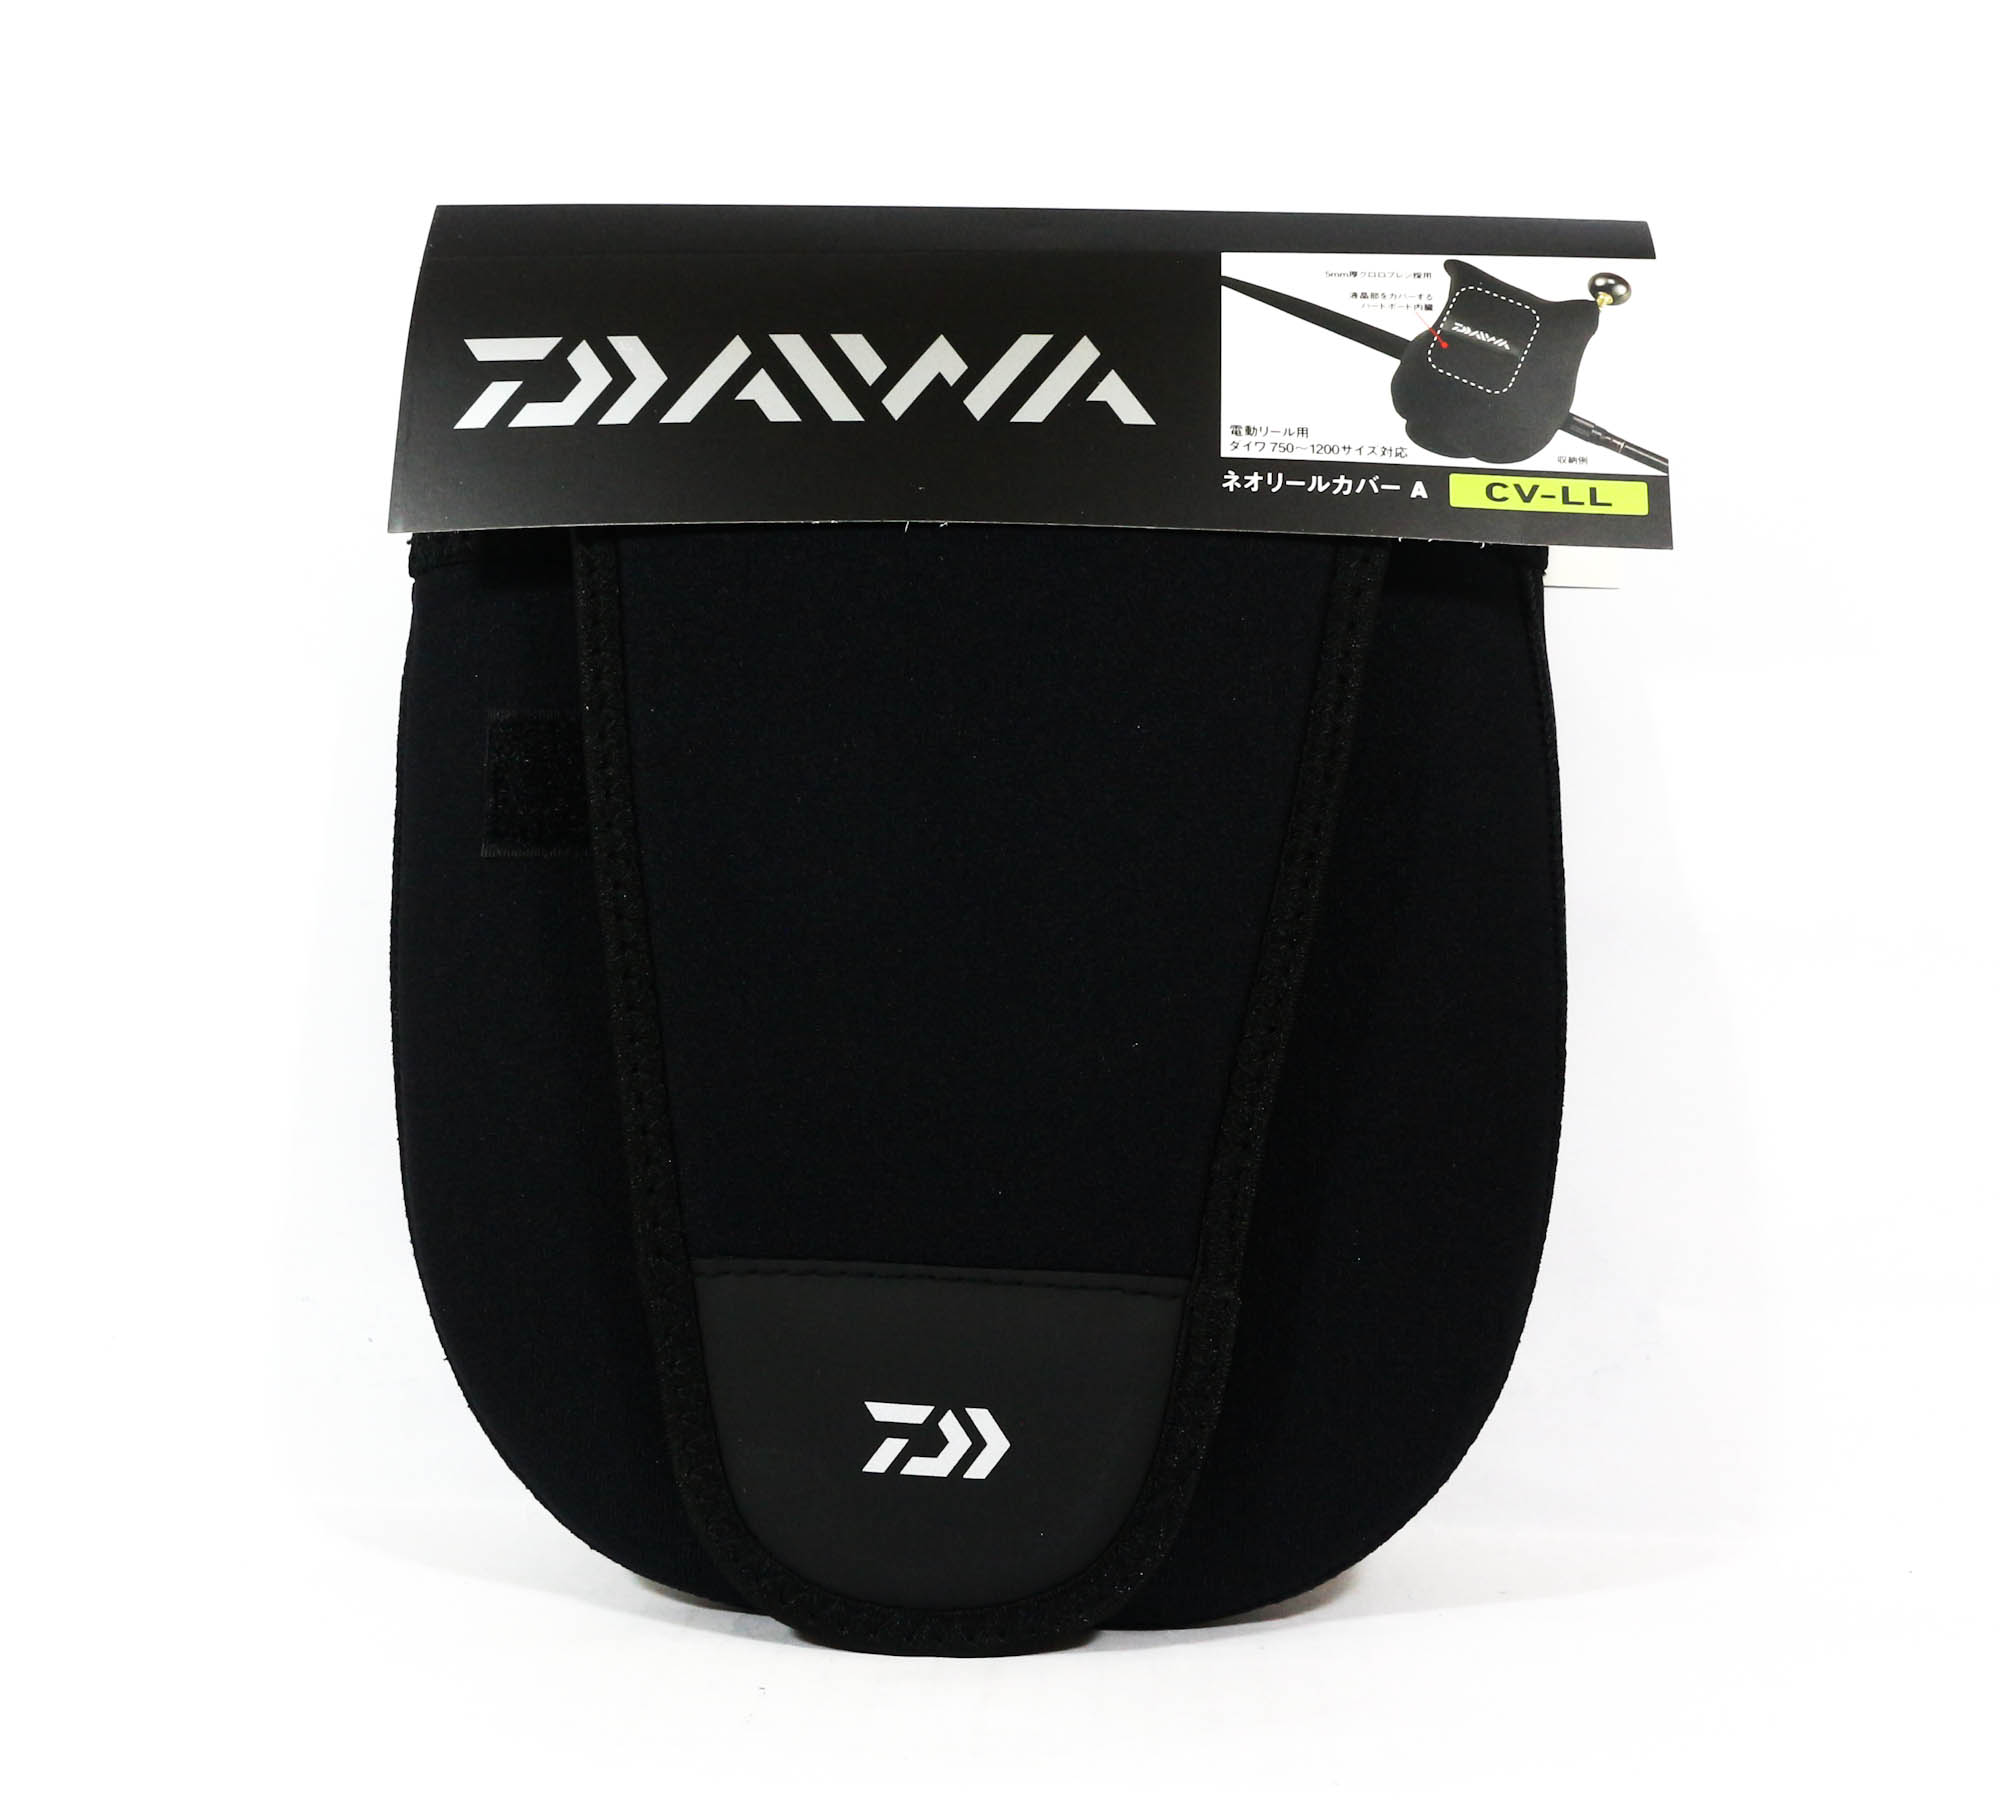 Daiwa Reel Bag Thick Neoprene Case for 750-1200 Reels Size CV-LL (7078)